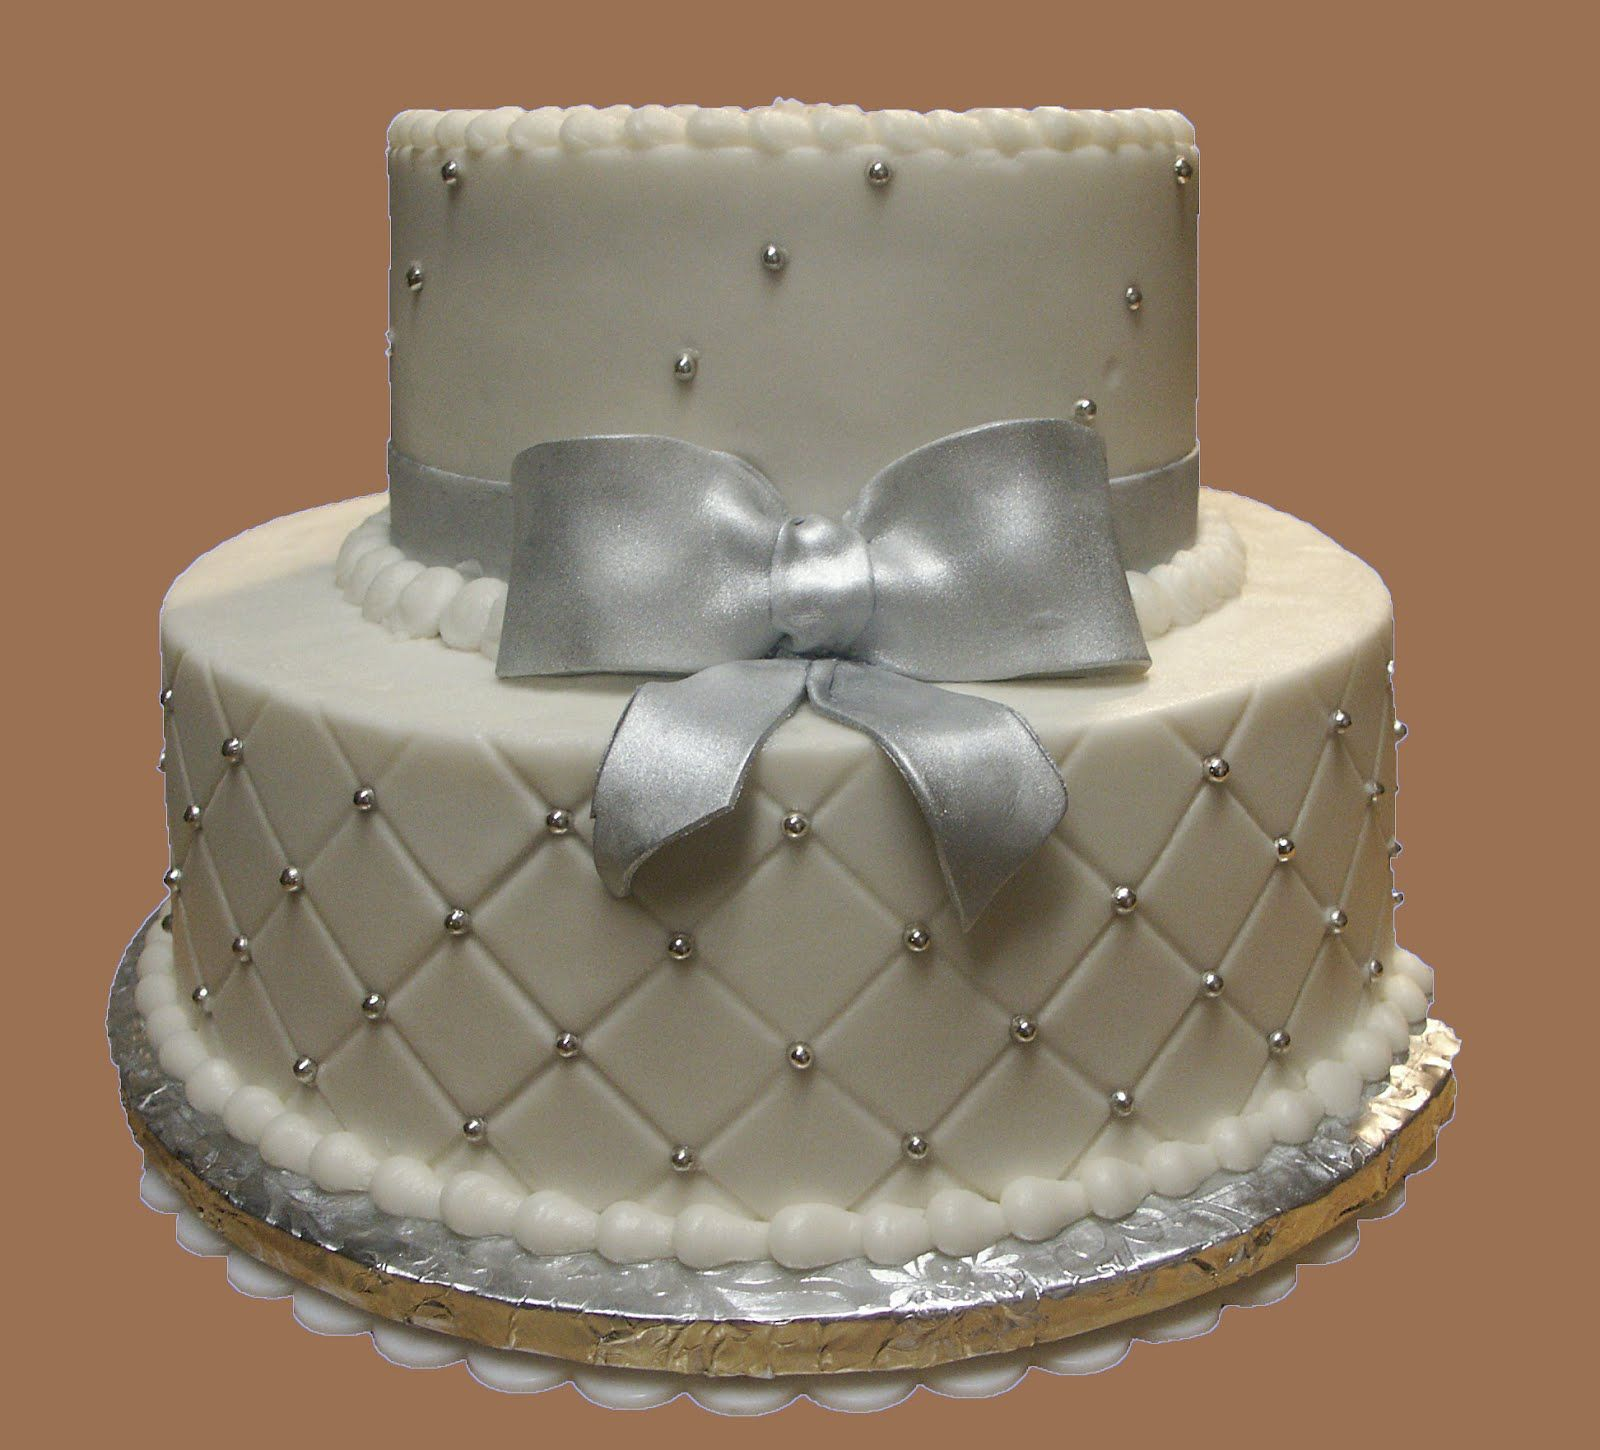 25th Wedding Anniversary Cake Ideas: Cakes And Cakes: 25TH Wedding Anniversary *Buttercream And